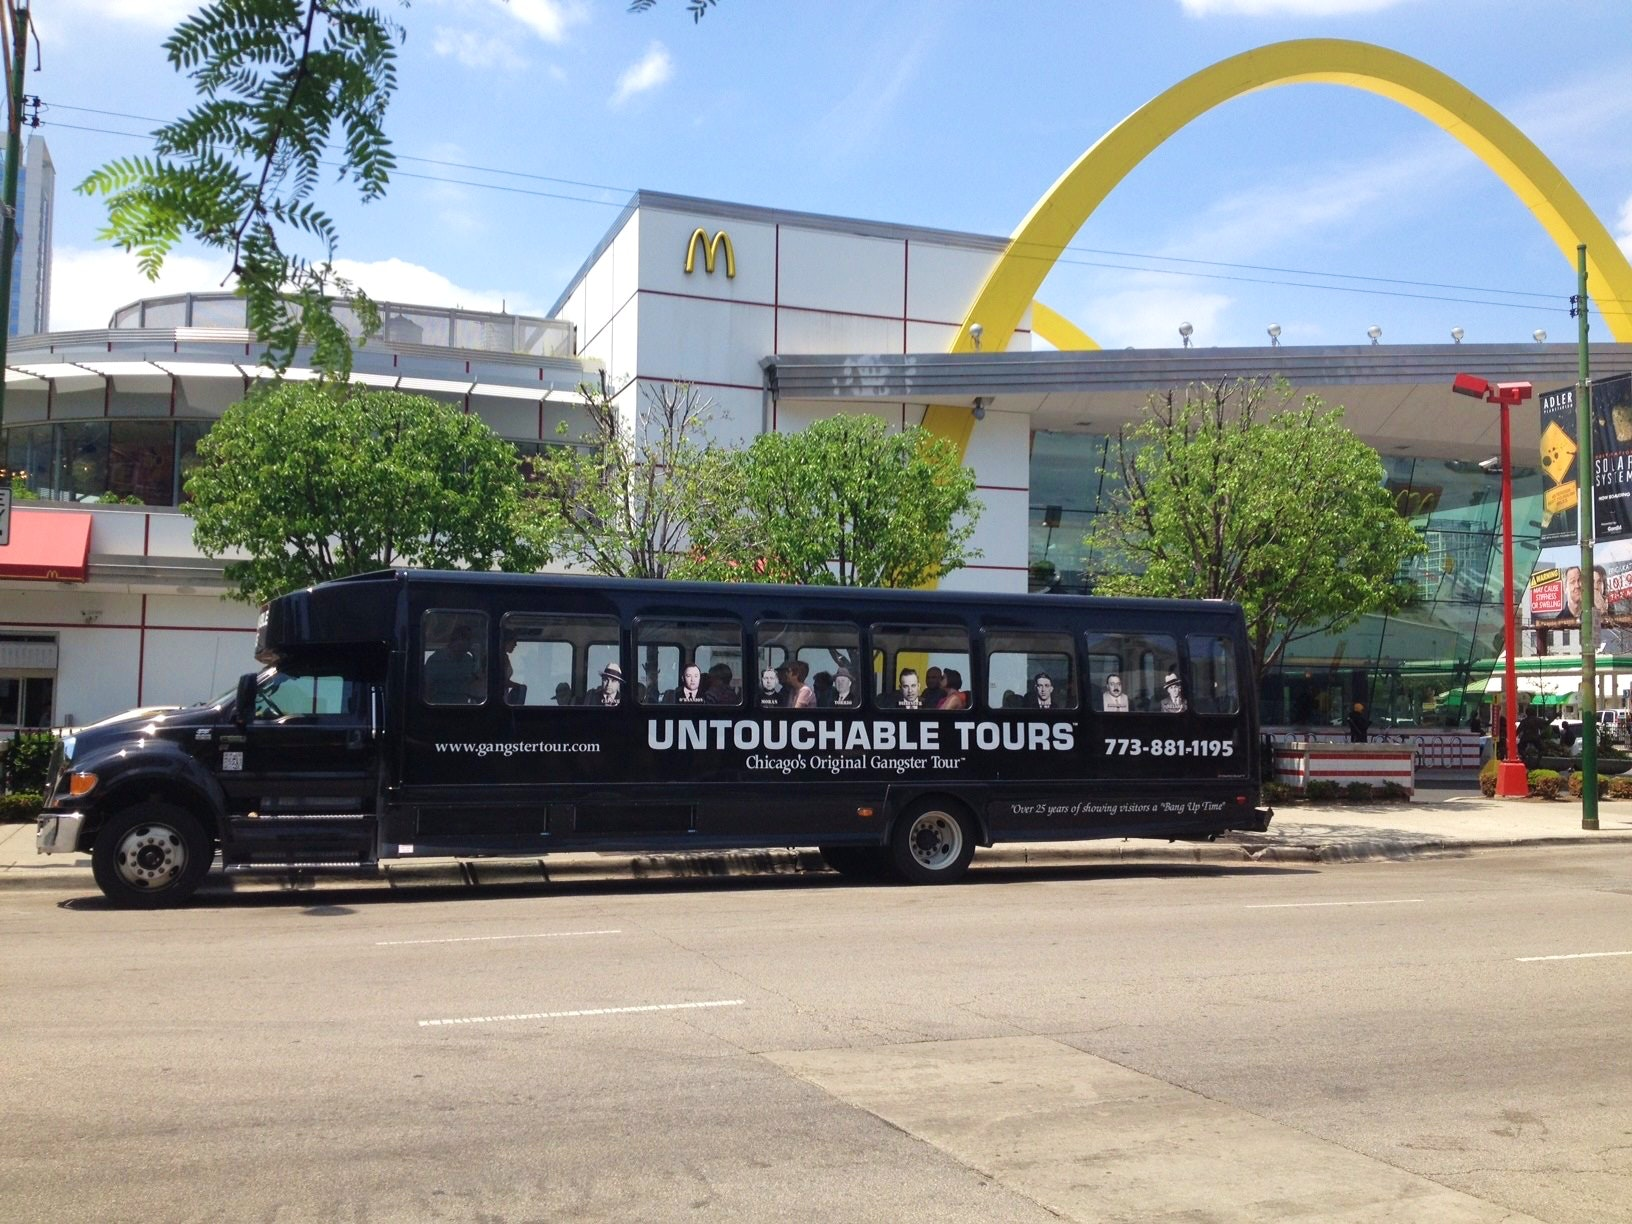 untouchable tours location